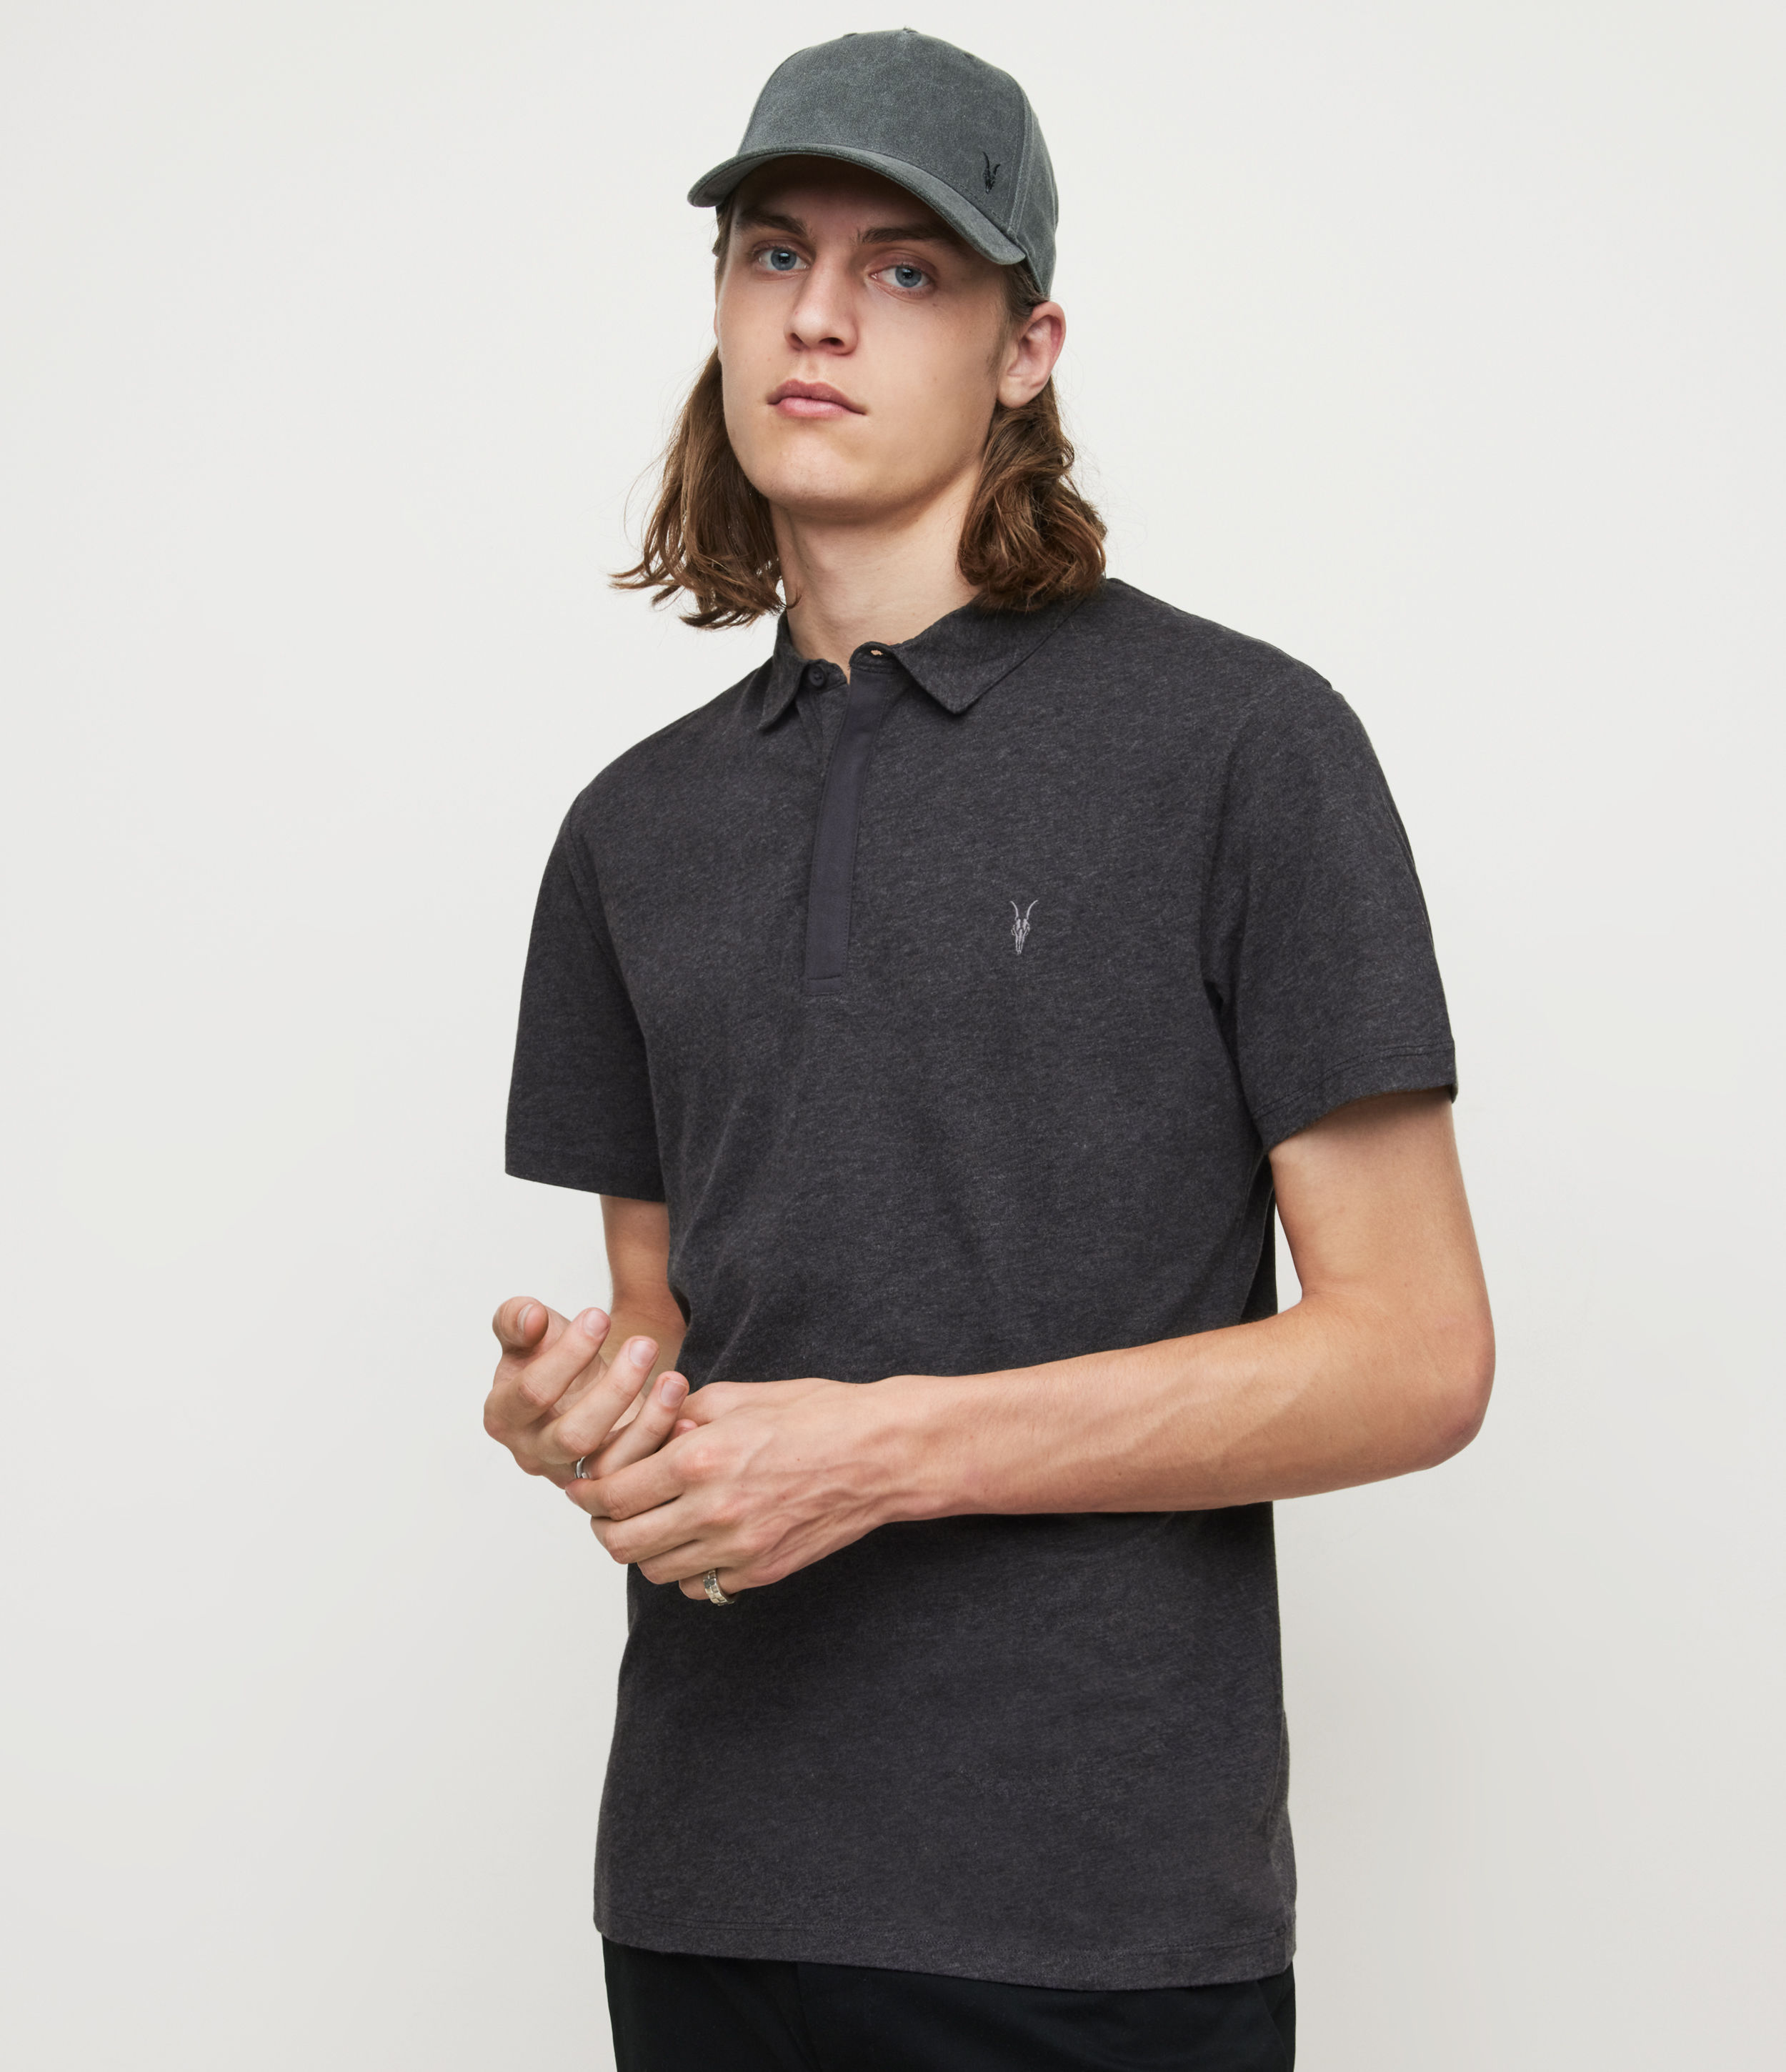 AllSaints Men's Cotton Regular Fit Brace Short Sleeve Polo Shirt, Grey, Size: M